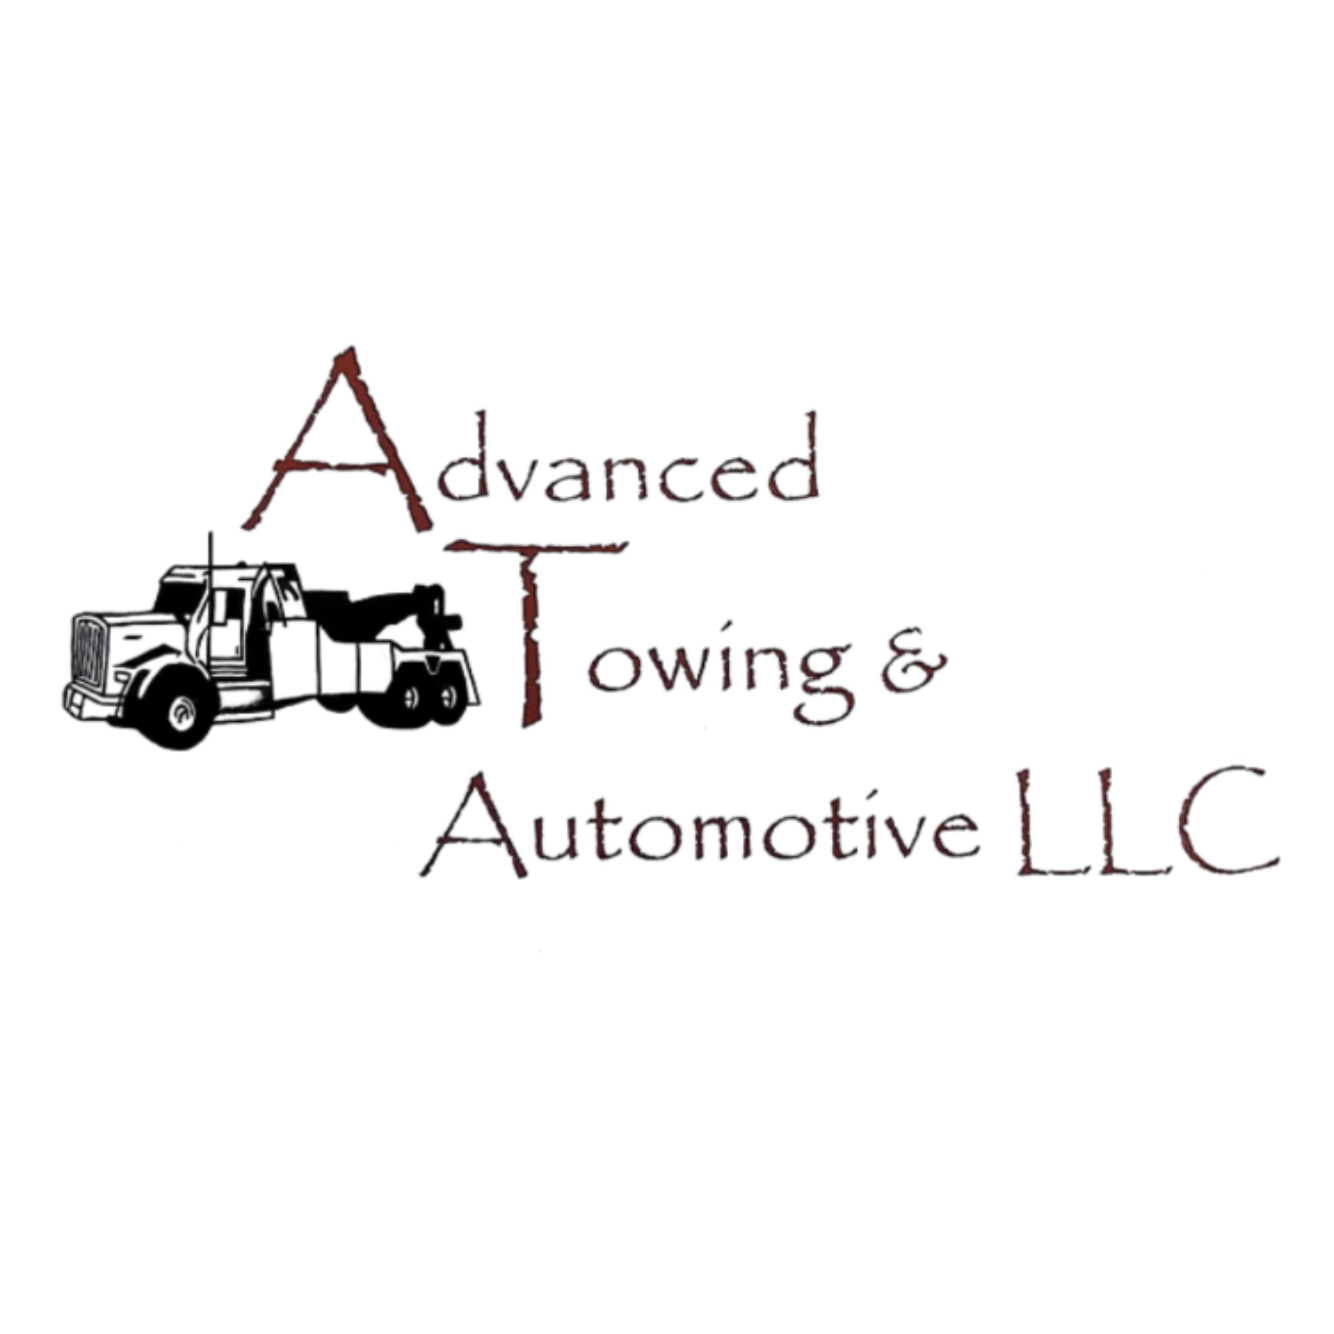 Advanced Towing and Automotive, LLC image 1